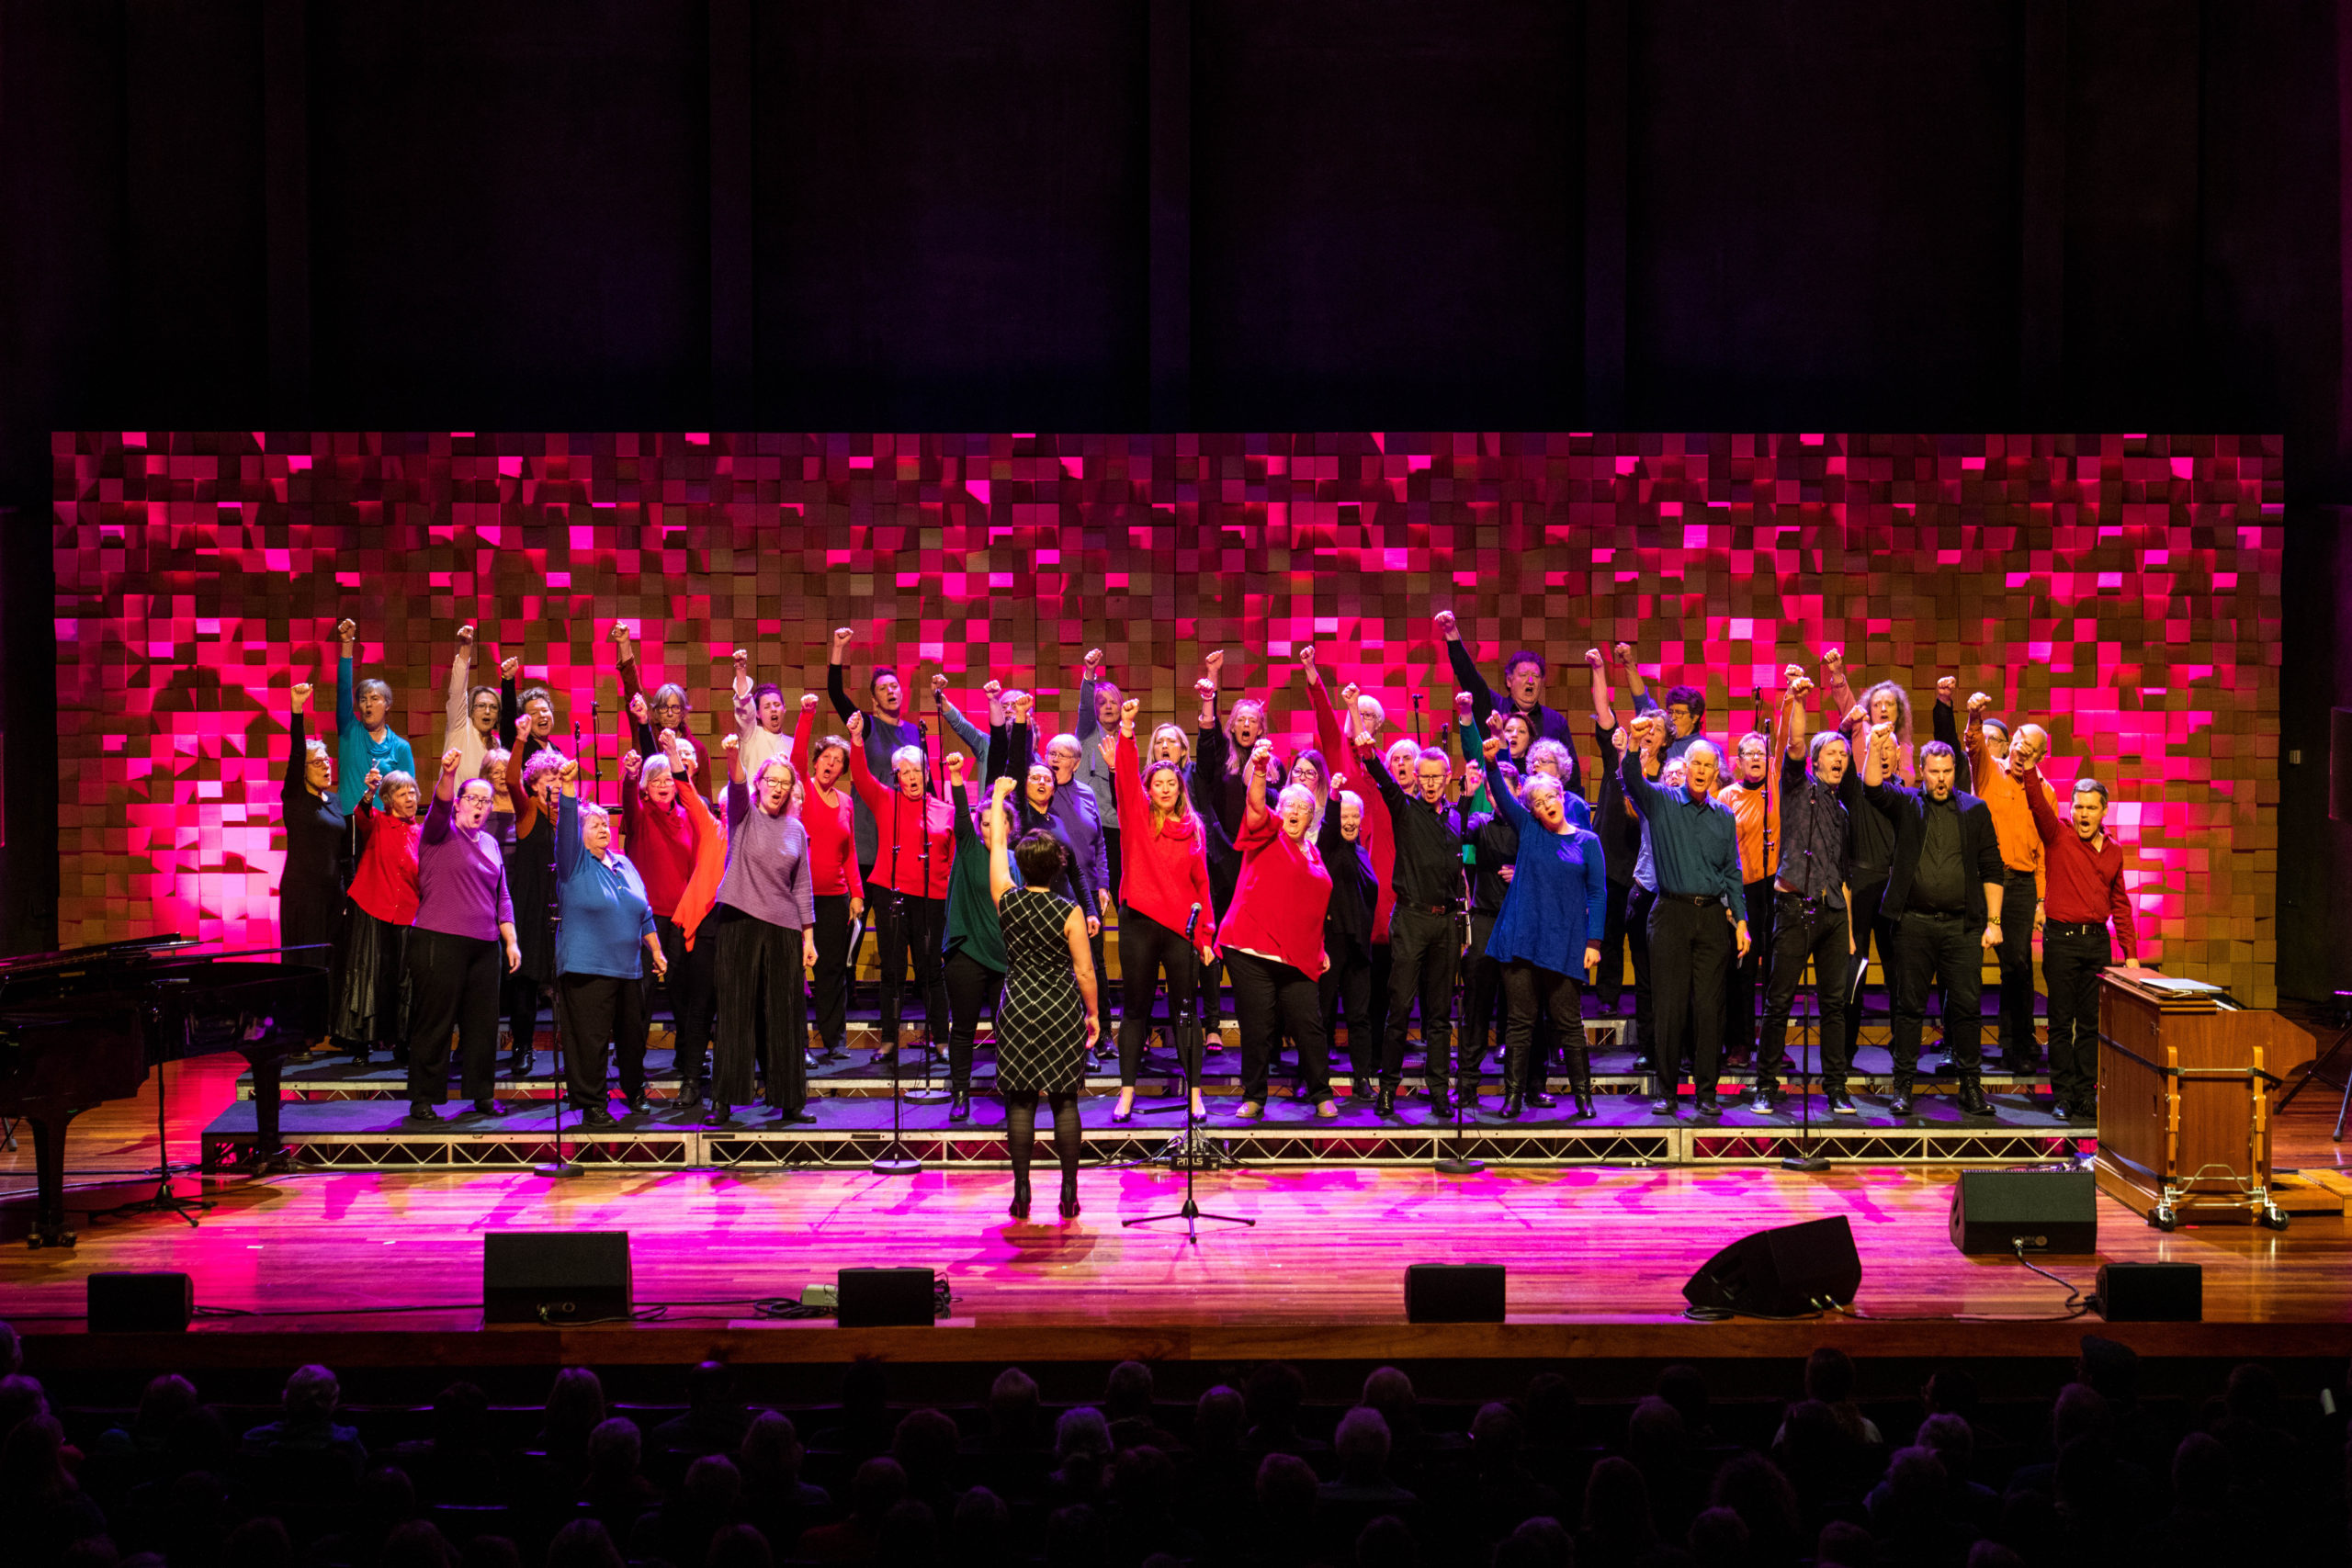 singers punching hands in air in triumph